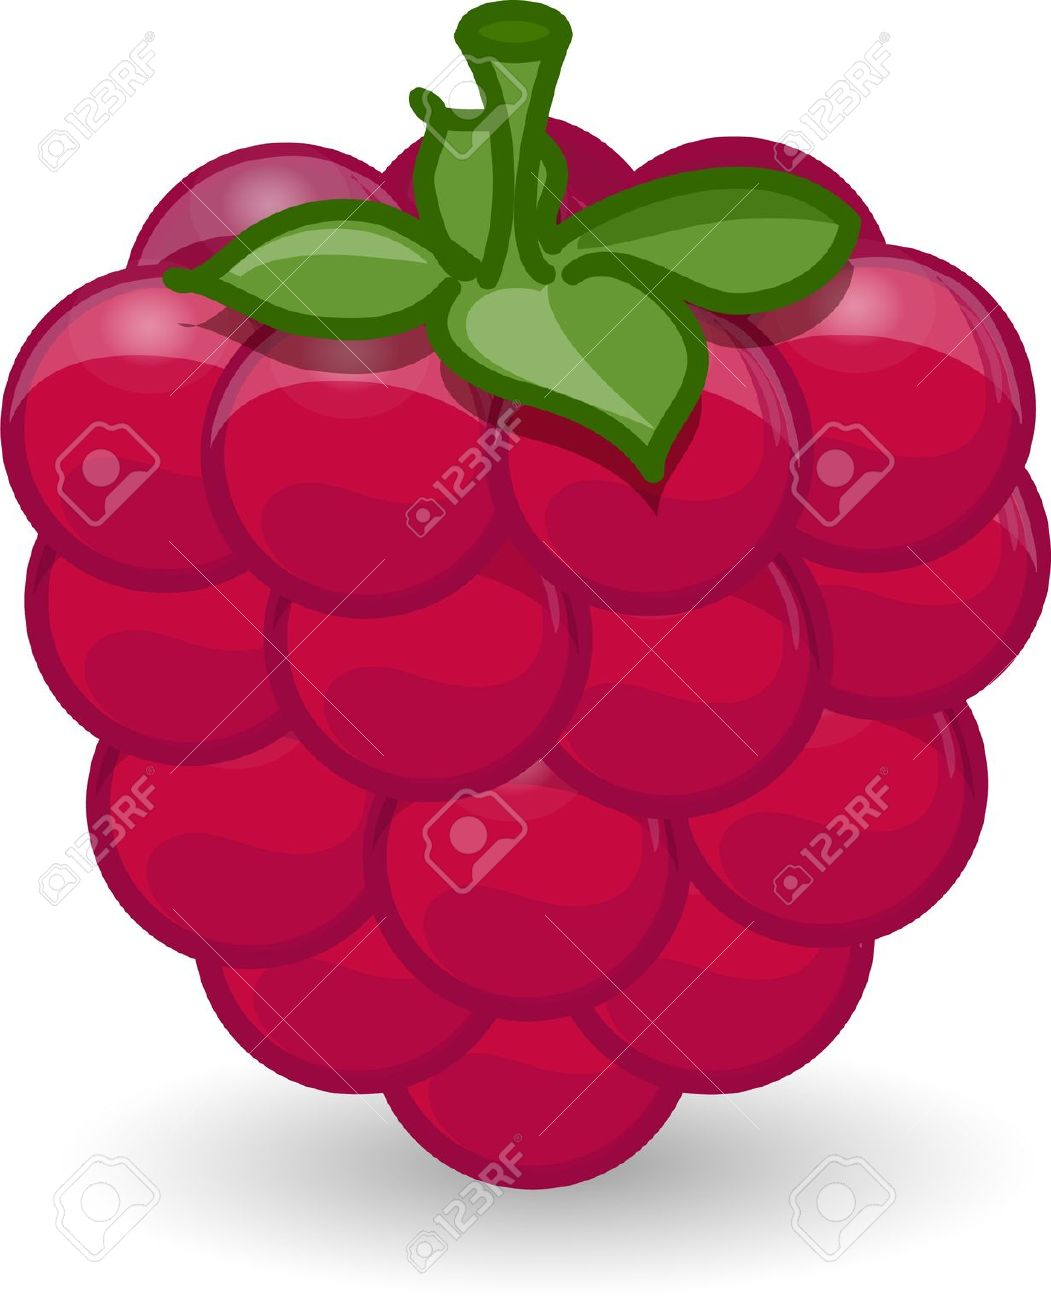 Raspberry Clipart | Free download best Raspberry Clipart on ... vector black and white